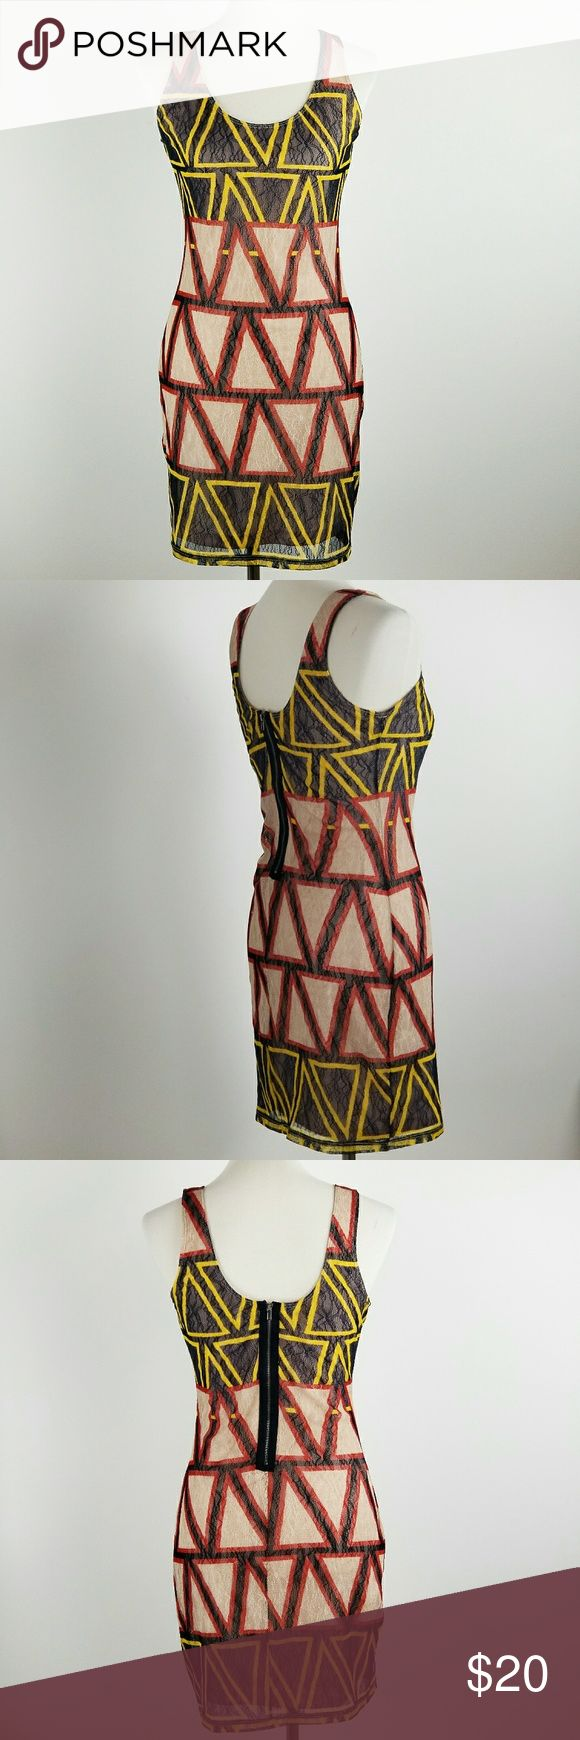 """Bar III Aztec Print Lace Sleeveless Mini Dress Lace Sheath Dress with neutral slip lining  Red, Black, and Yellow colors  Size Medium listed on tag  Measurements  Armpit to armpit: 16 1/2"""" Length from shoulder: 34"""" Waist: 14"""" Bar III Dresses Mini"""